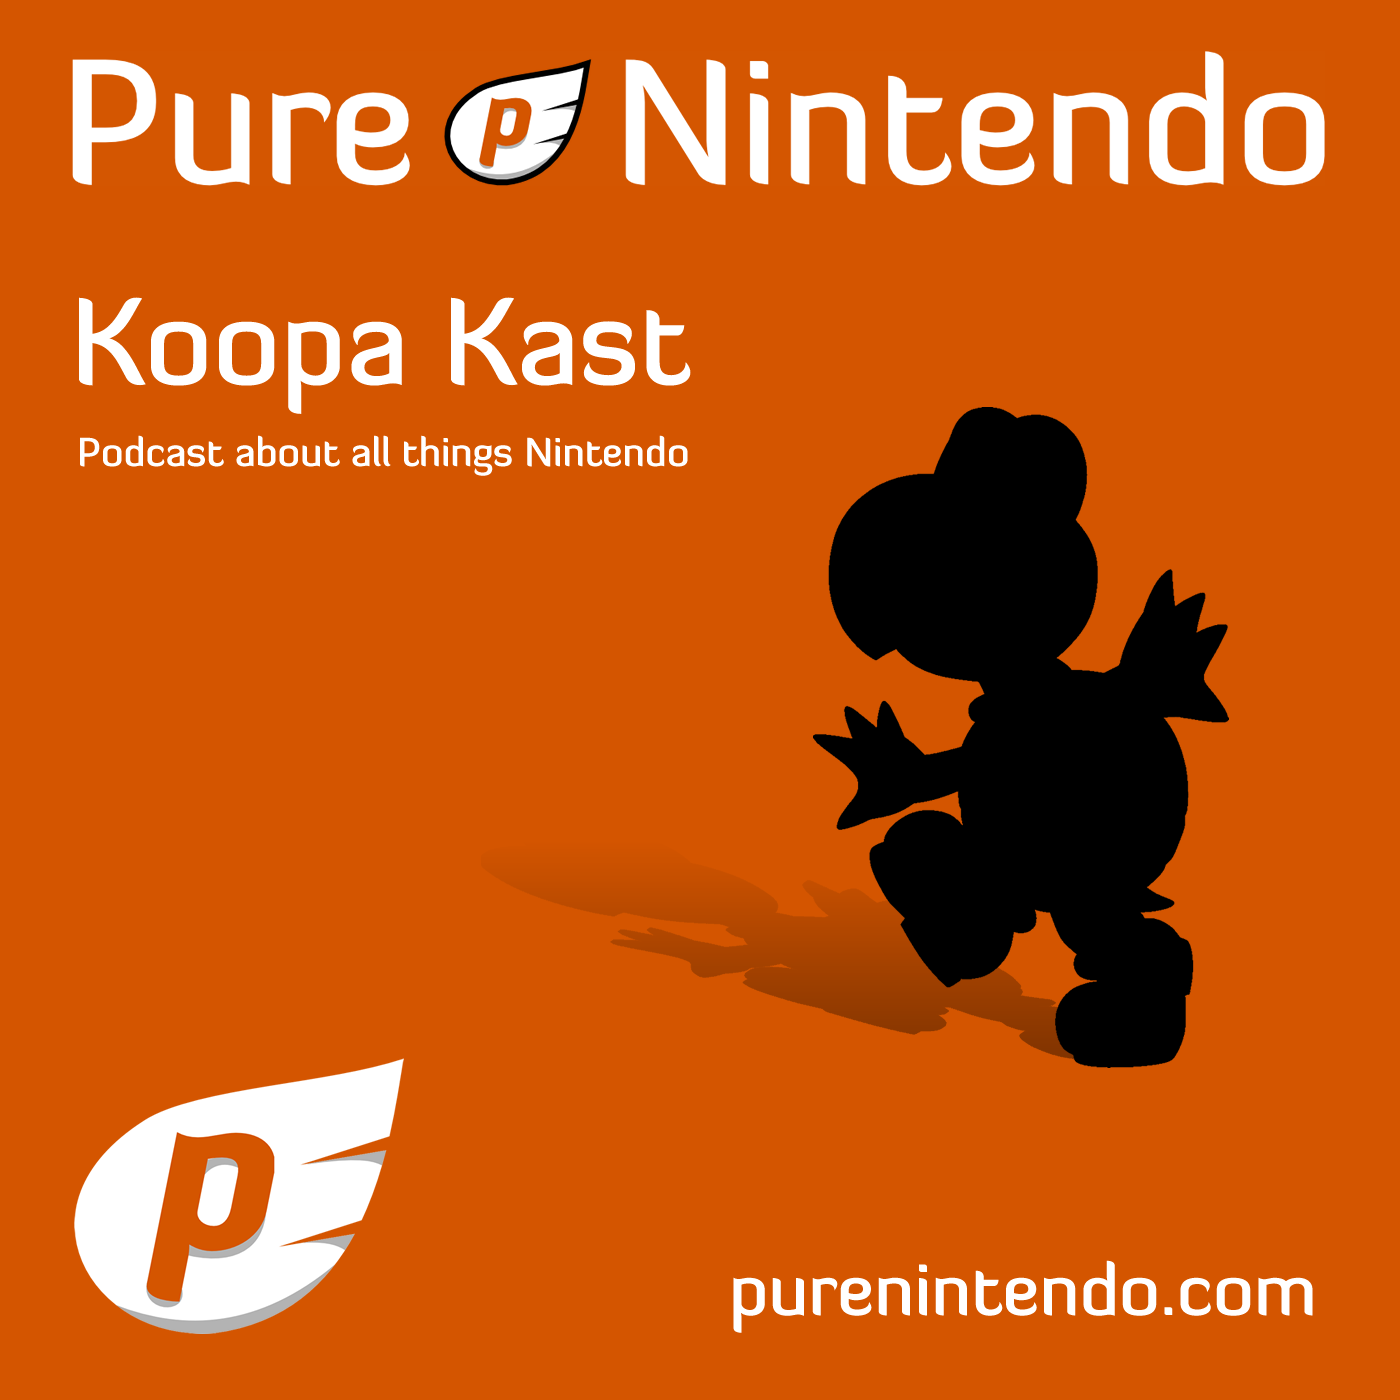 Koopa Kast 92: NX, Pokémon, and J-Pop